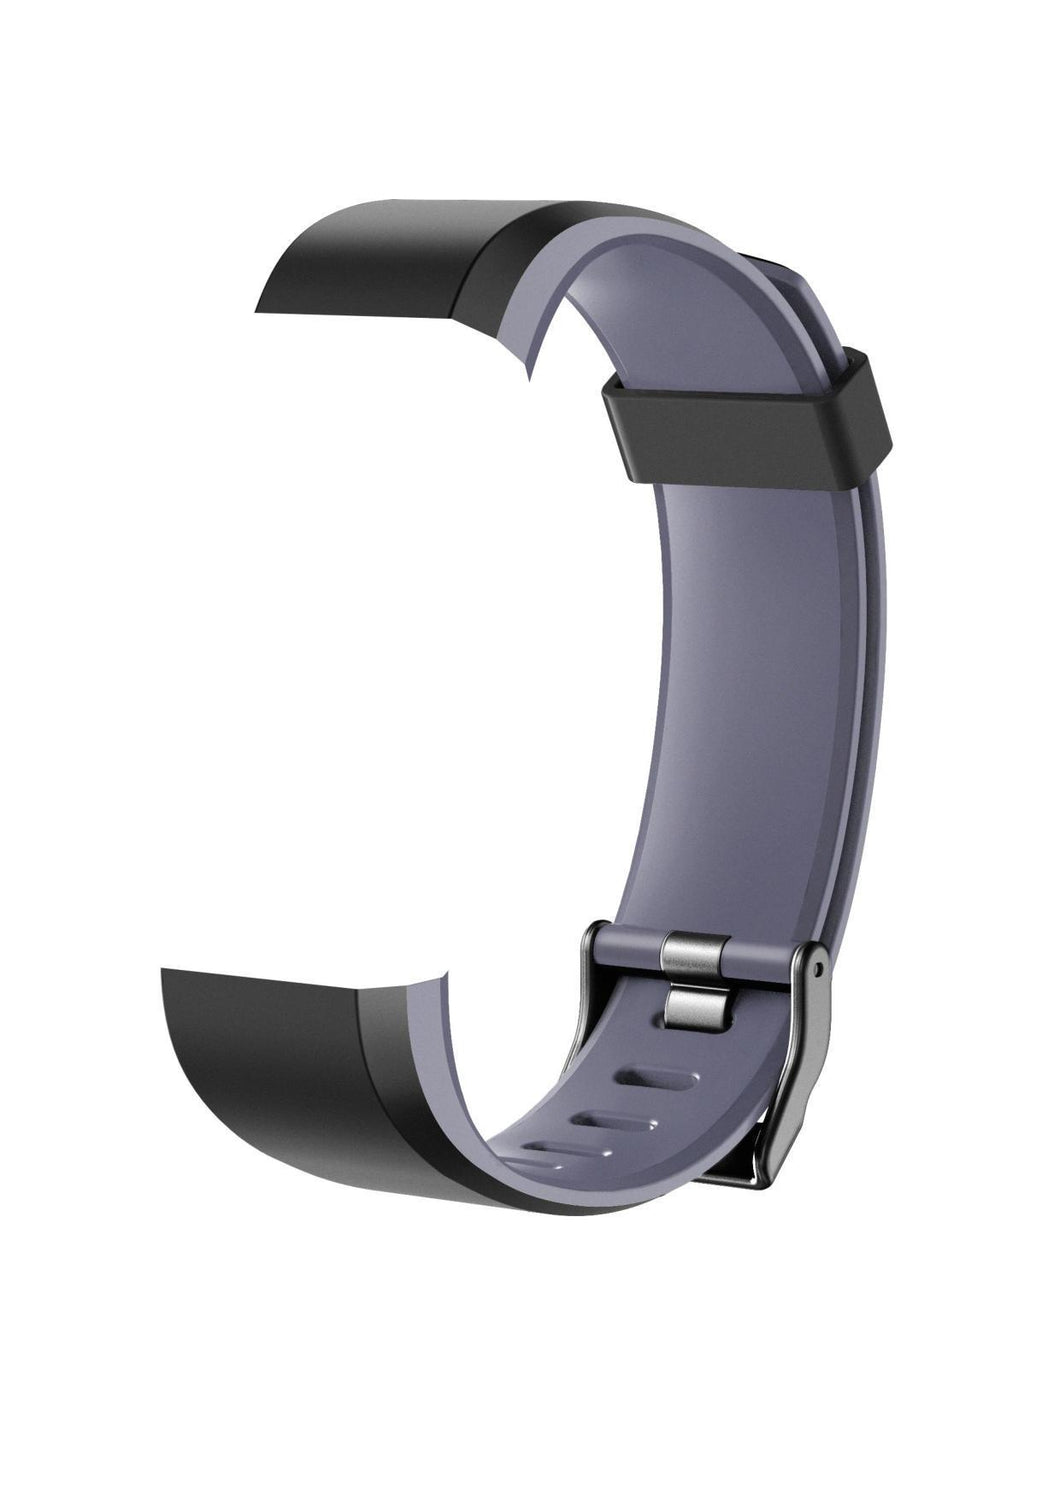 Bands - X2 GO - Band - Black / Grey Band For CAC-102-M01